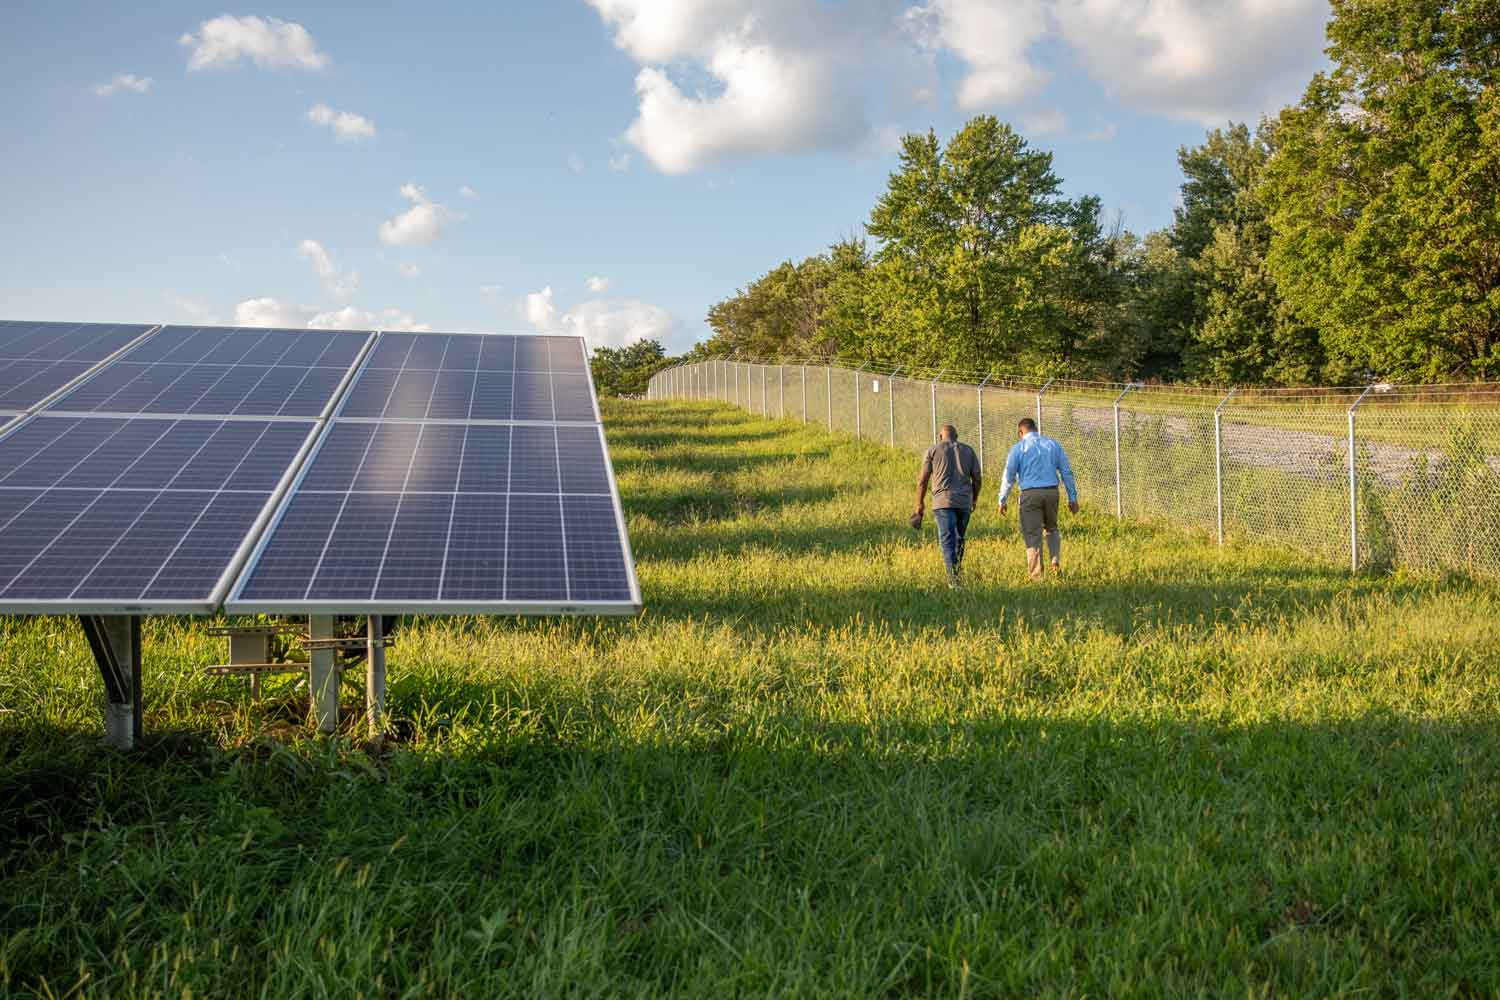 Rob and Walter walk off into the distance in a field of solar panels.